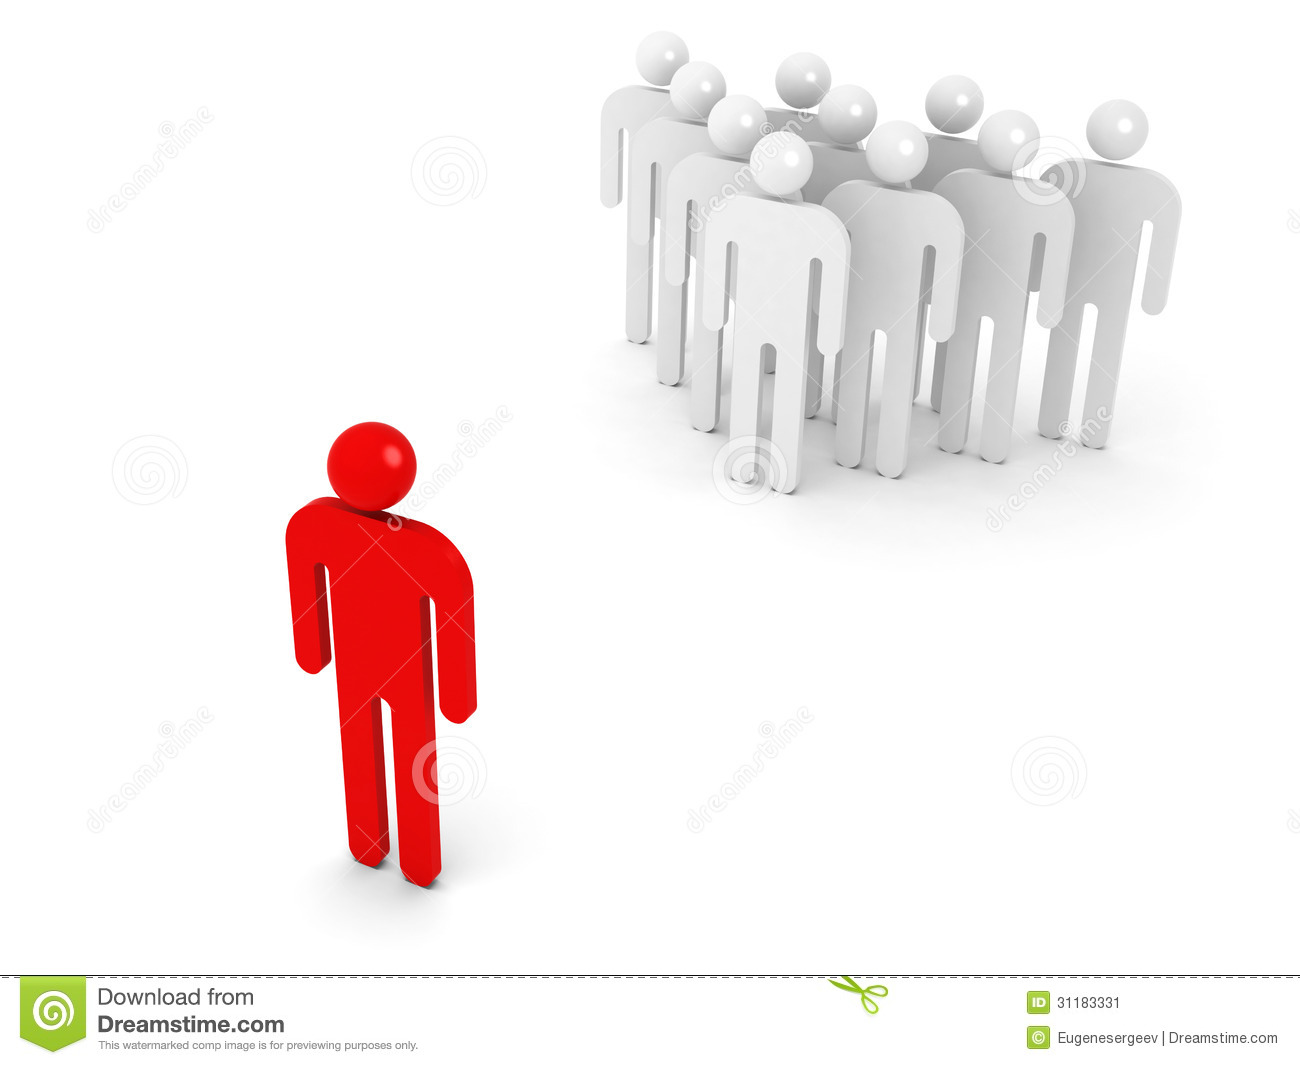 group of schematic people and one opposite red stock image crown clipart simple crown clipart simple